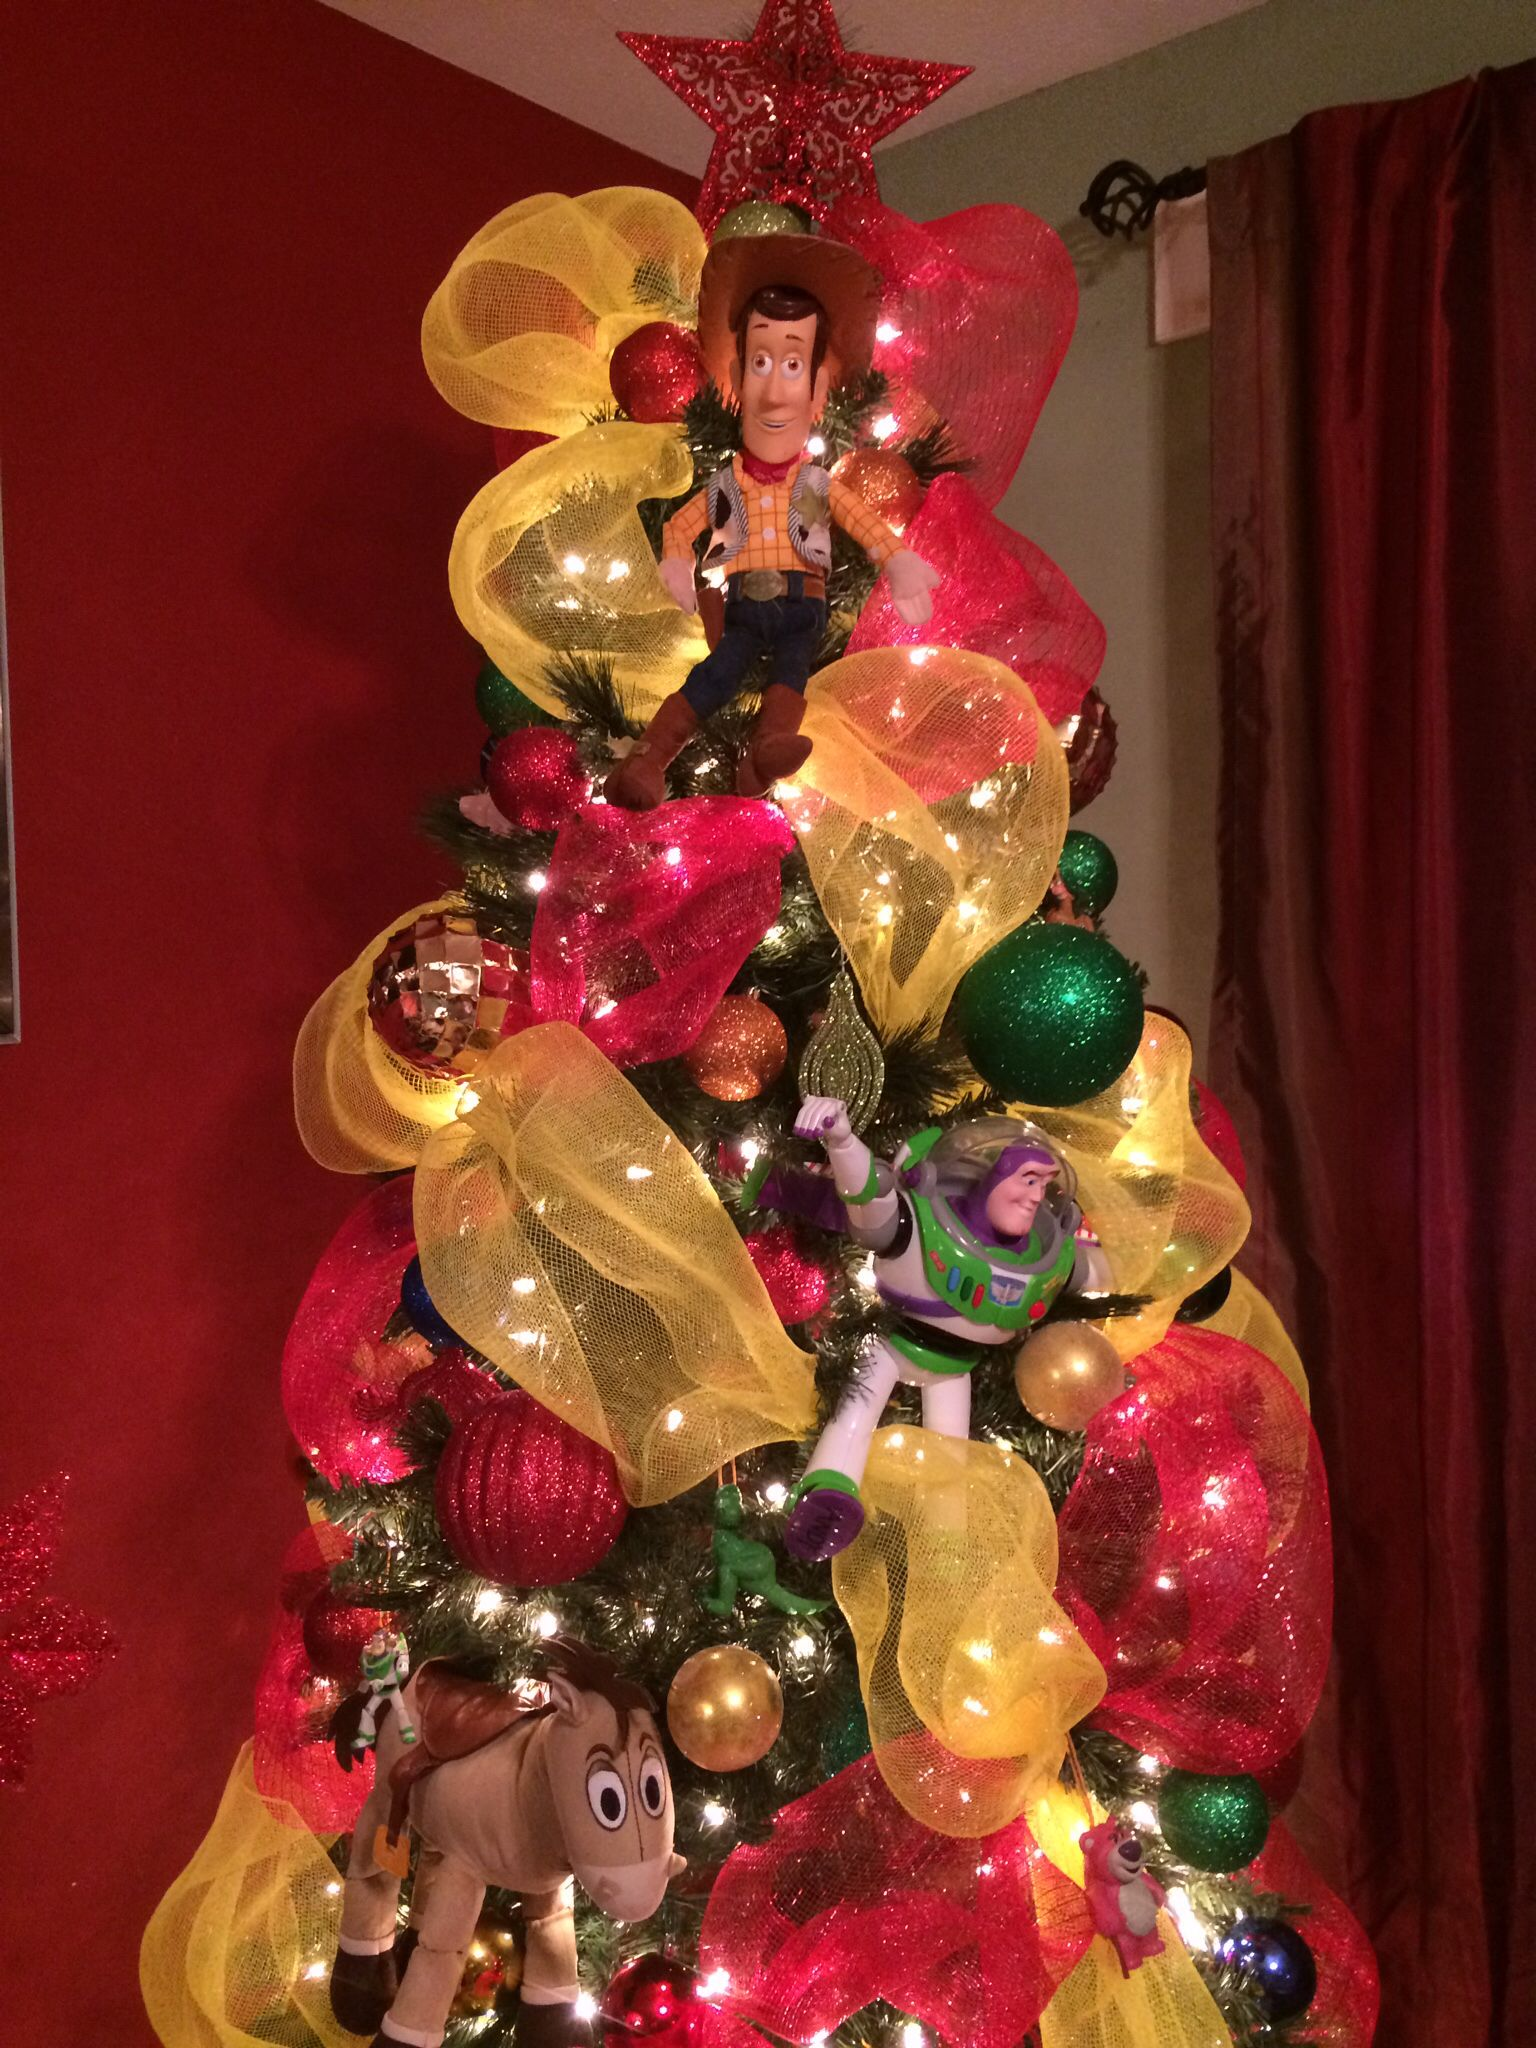 Toy Story Christmas Ornaments.Toy Story Decoration Ideas Christmas Tree Christmas